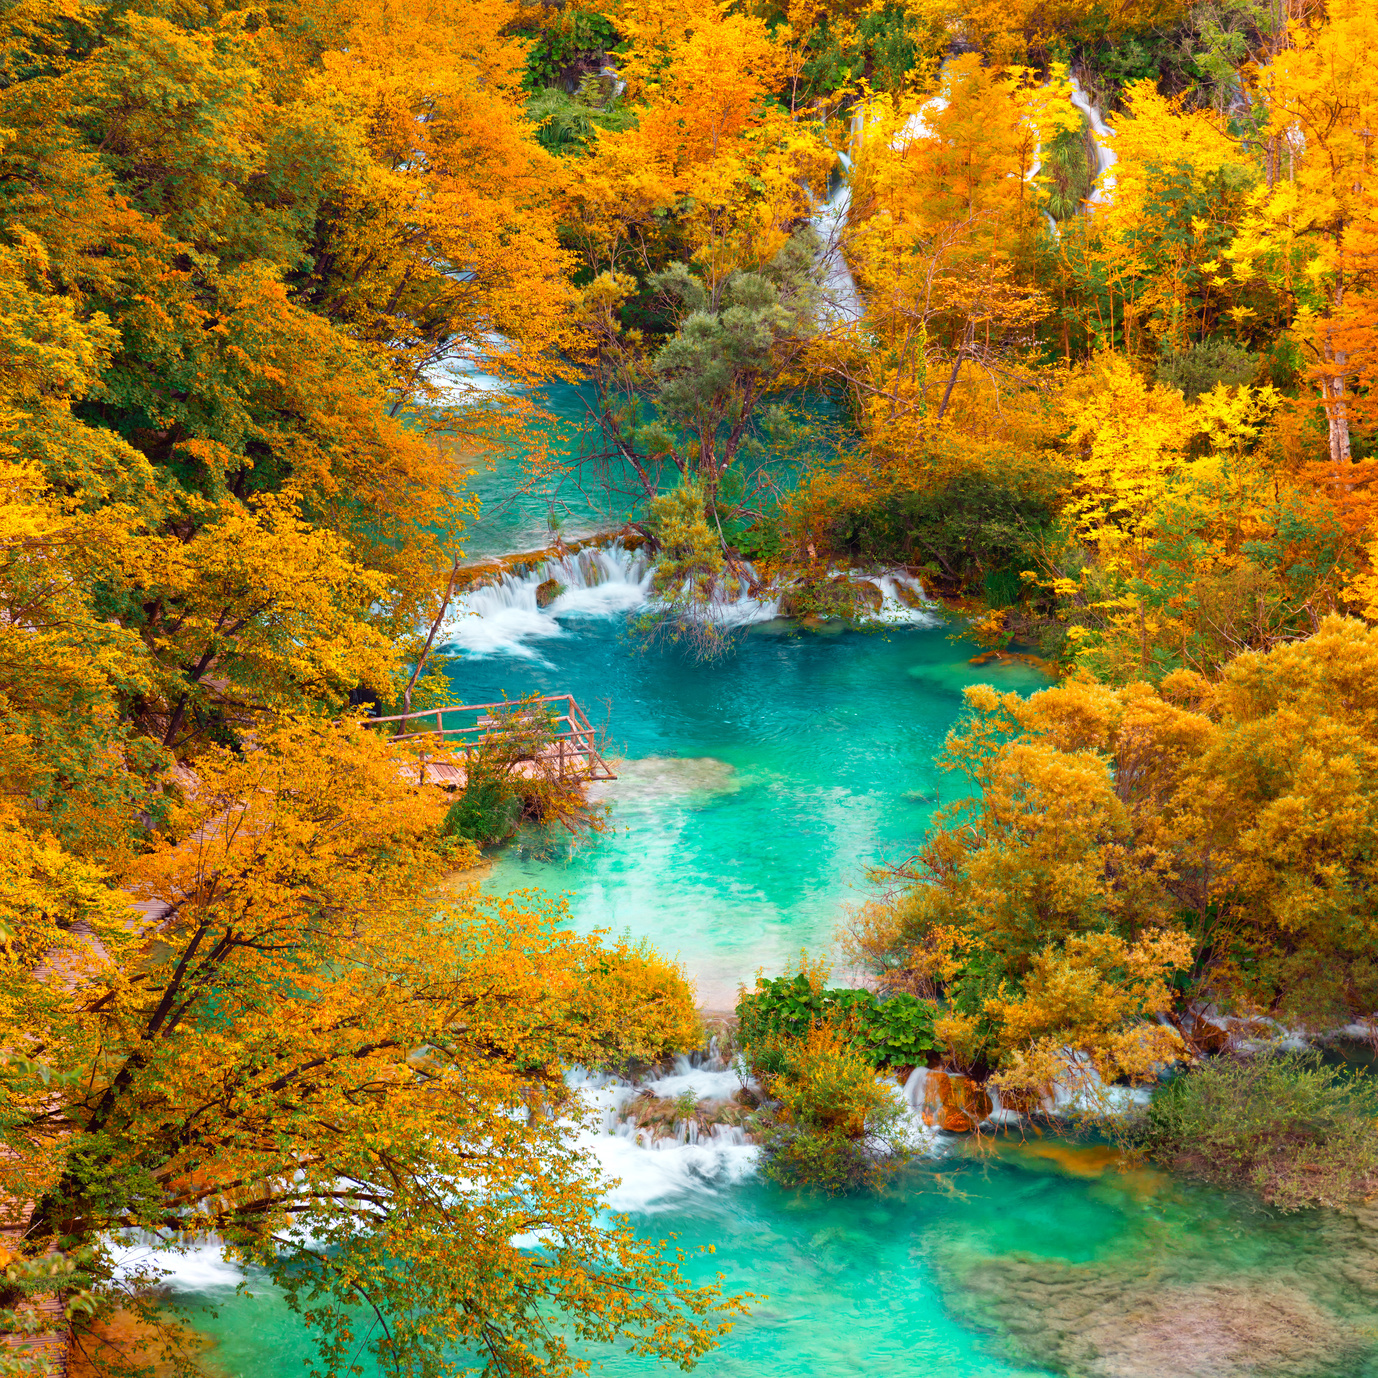 Aerial Autumn view on waterfalls and lakes with turquoise water and golden trees in the Plitvice Lakes National Park, Croatia, Europe